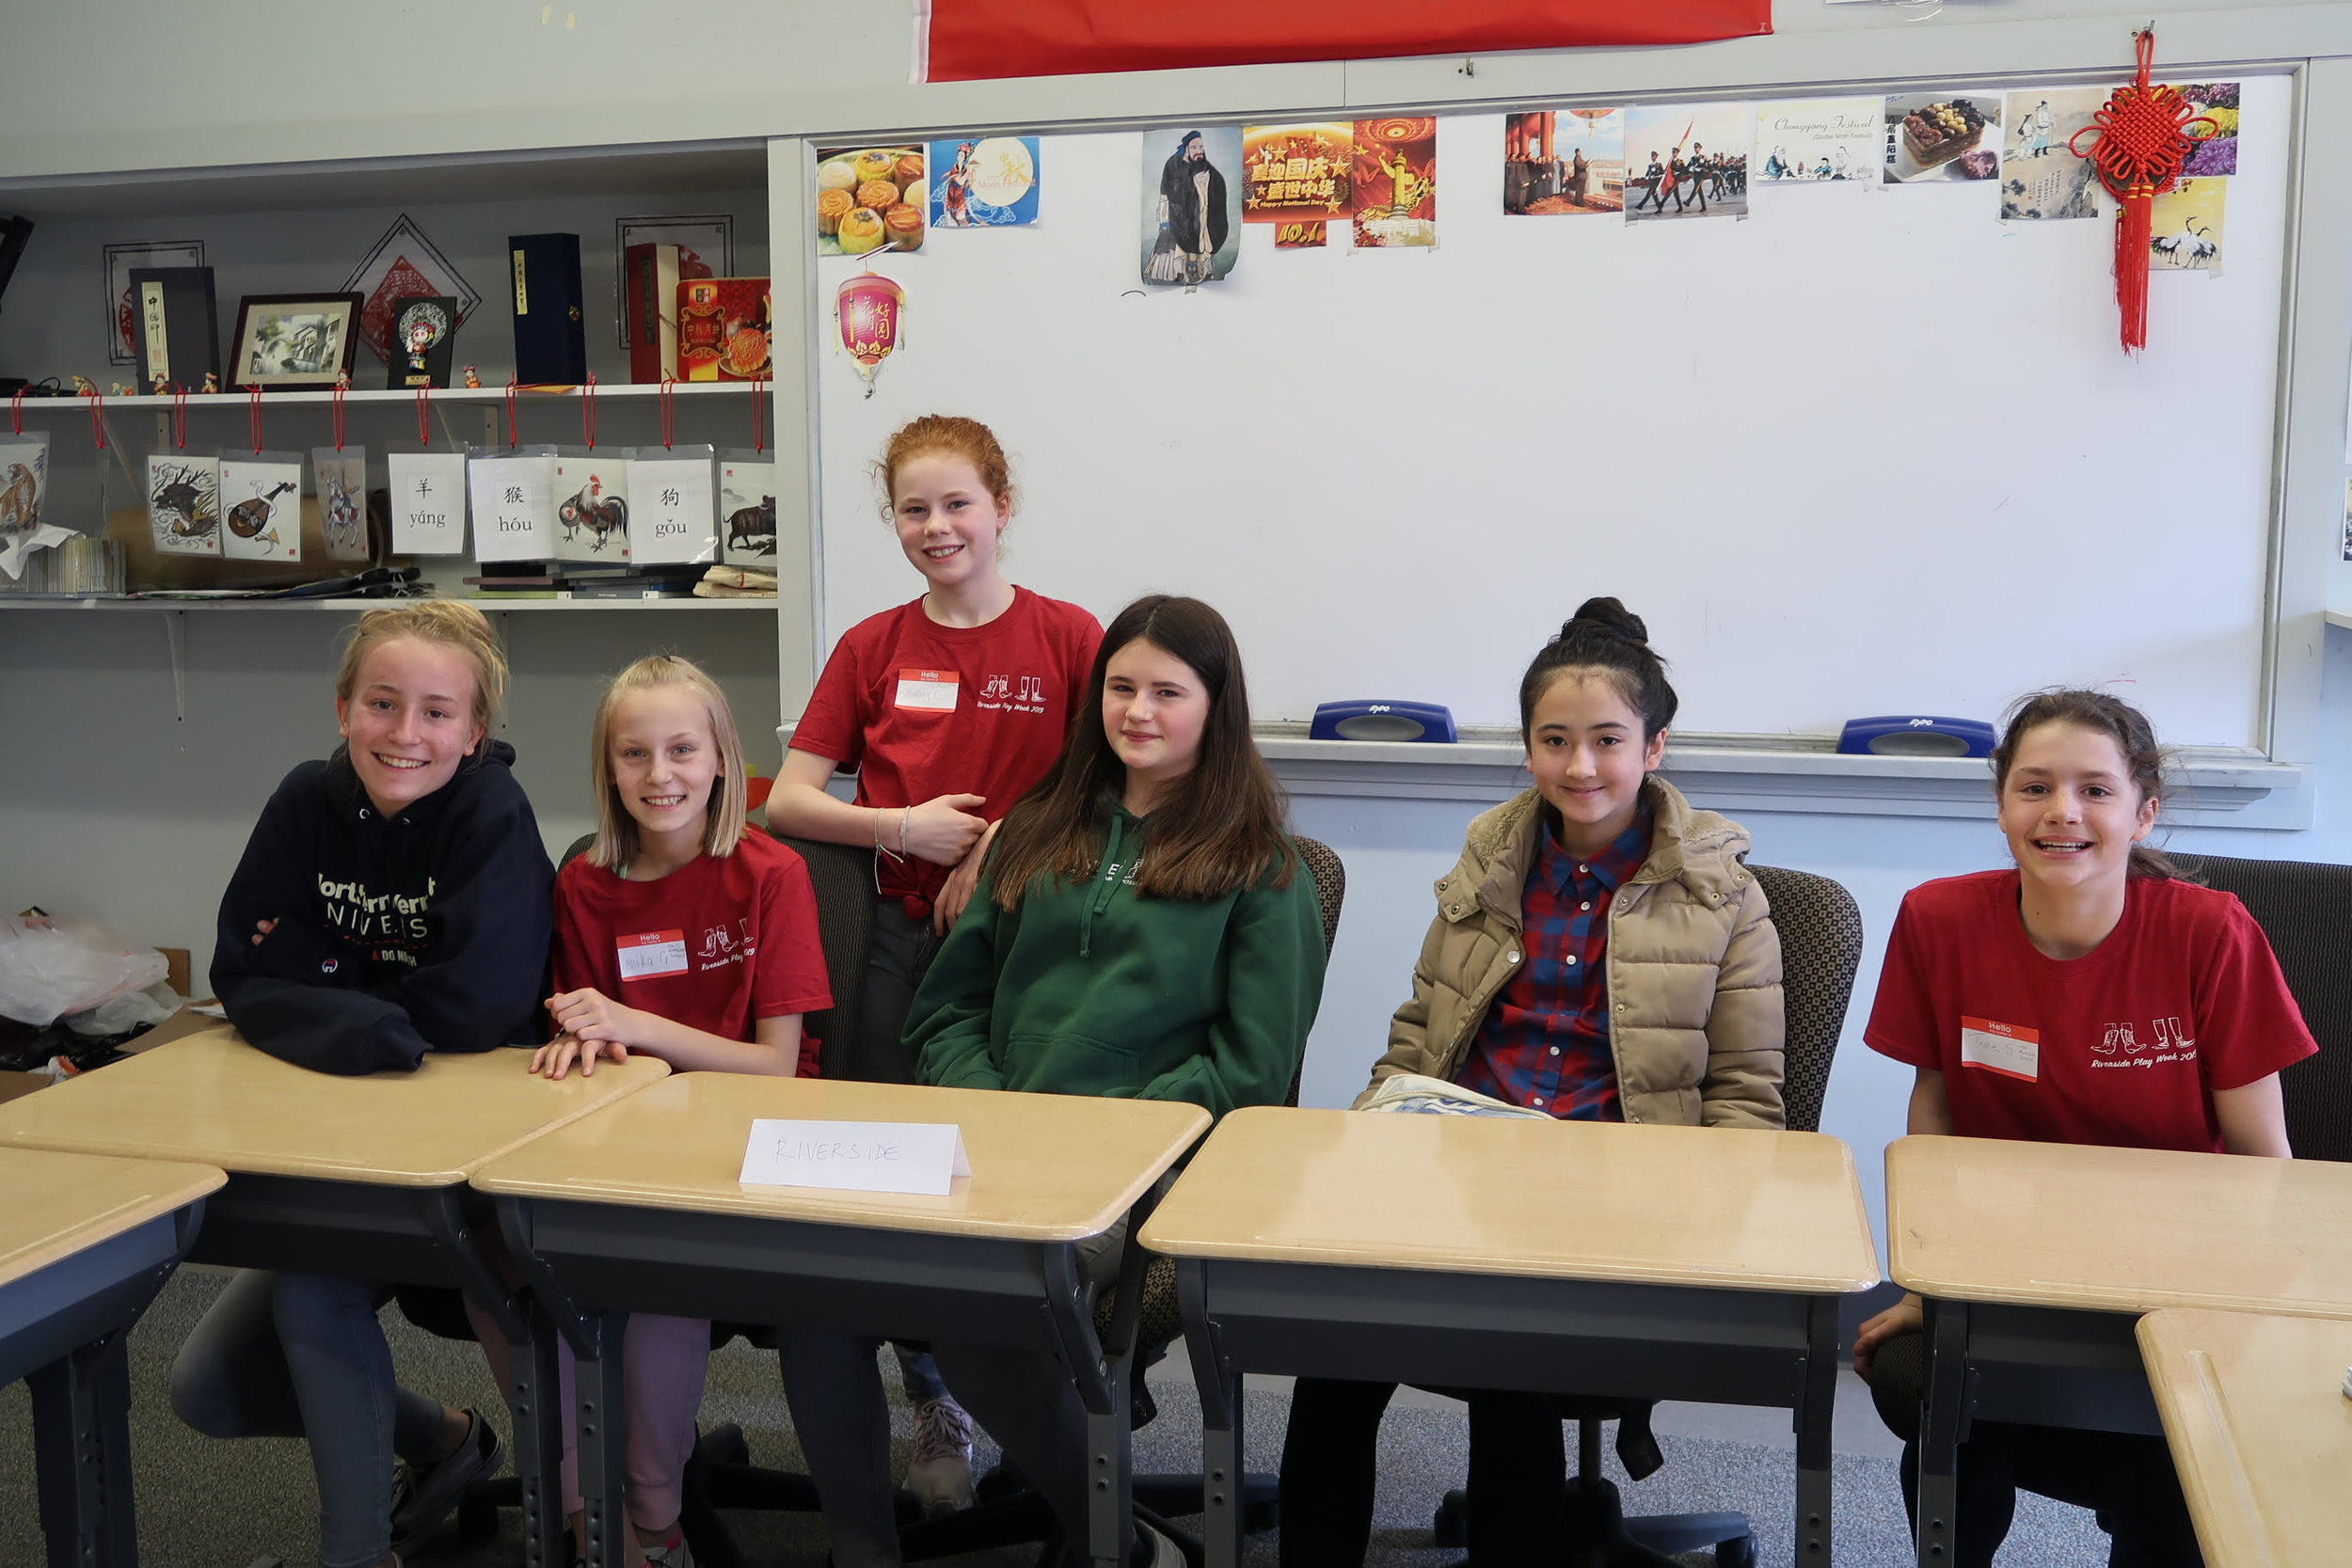 Our Latin Club (including 8th graders Maren Giese, Alexa Counter, and Jasmine Engle; and 6th graders Anika Giese, Emily Counter, and Trixie Shackleton) traveled to compete in Concord, NH over the vacation, see their results below.